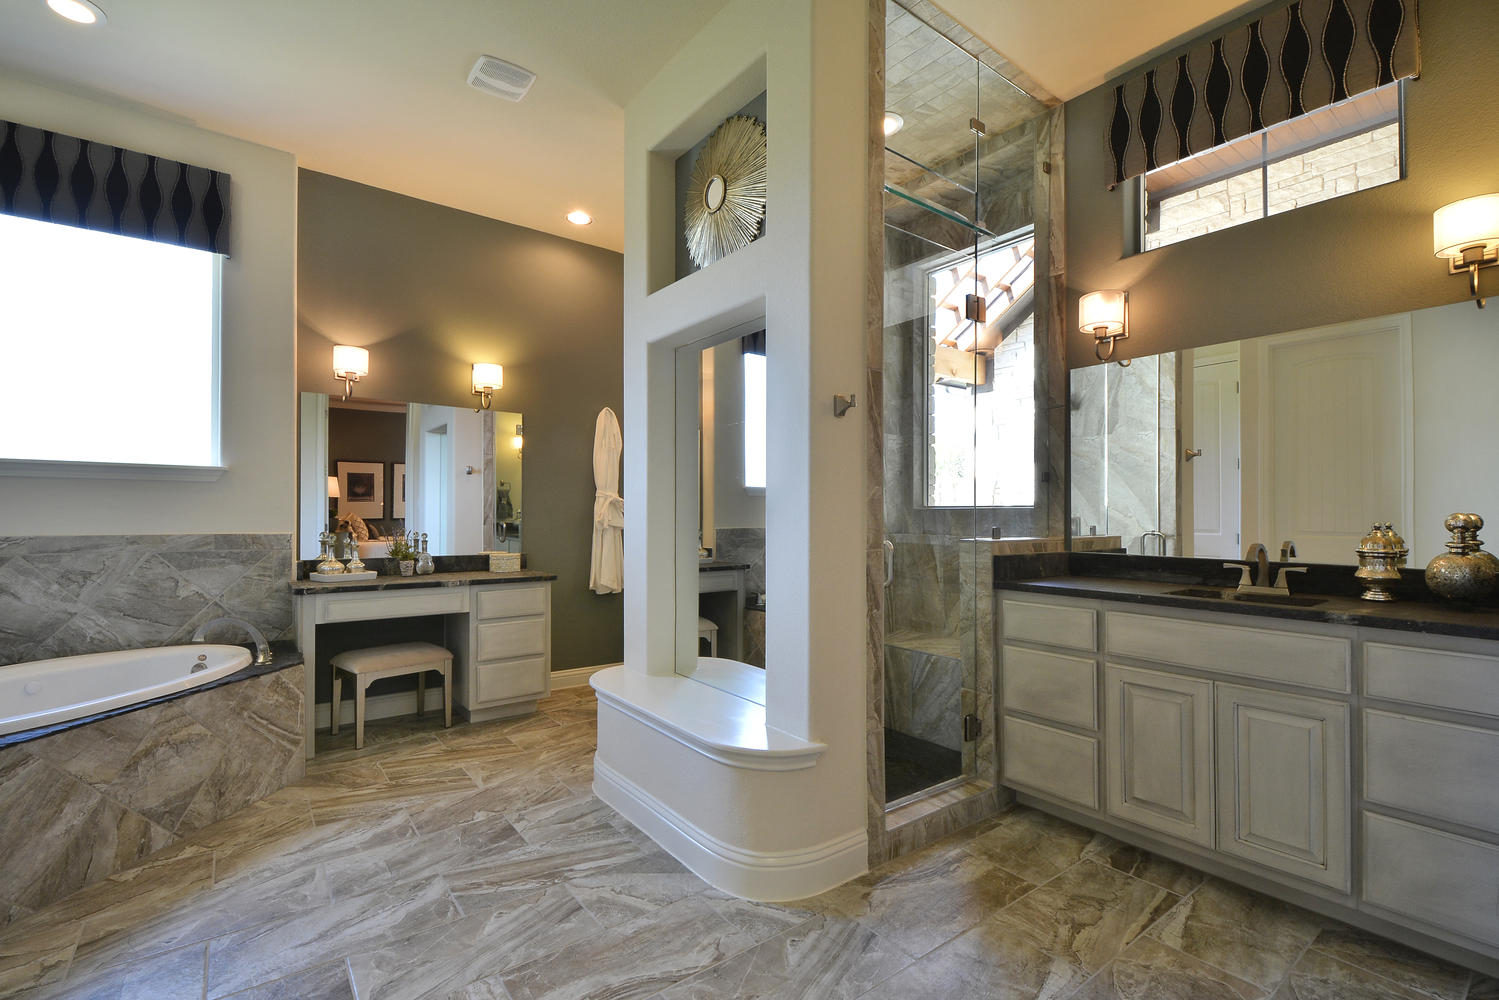 Burrows Cabinets master bath in bone with black glaze